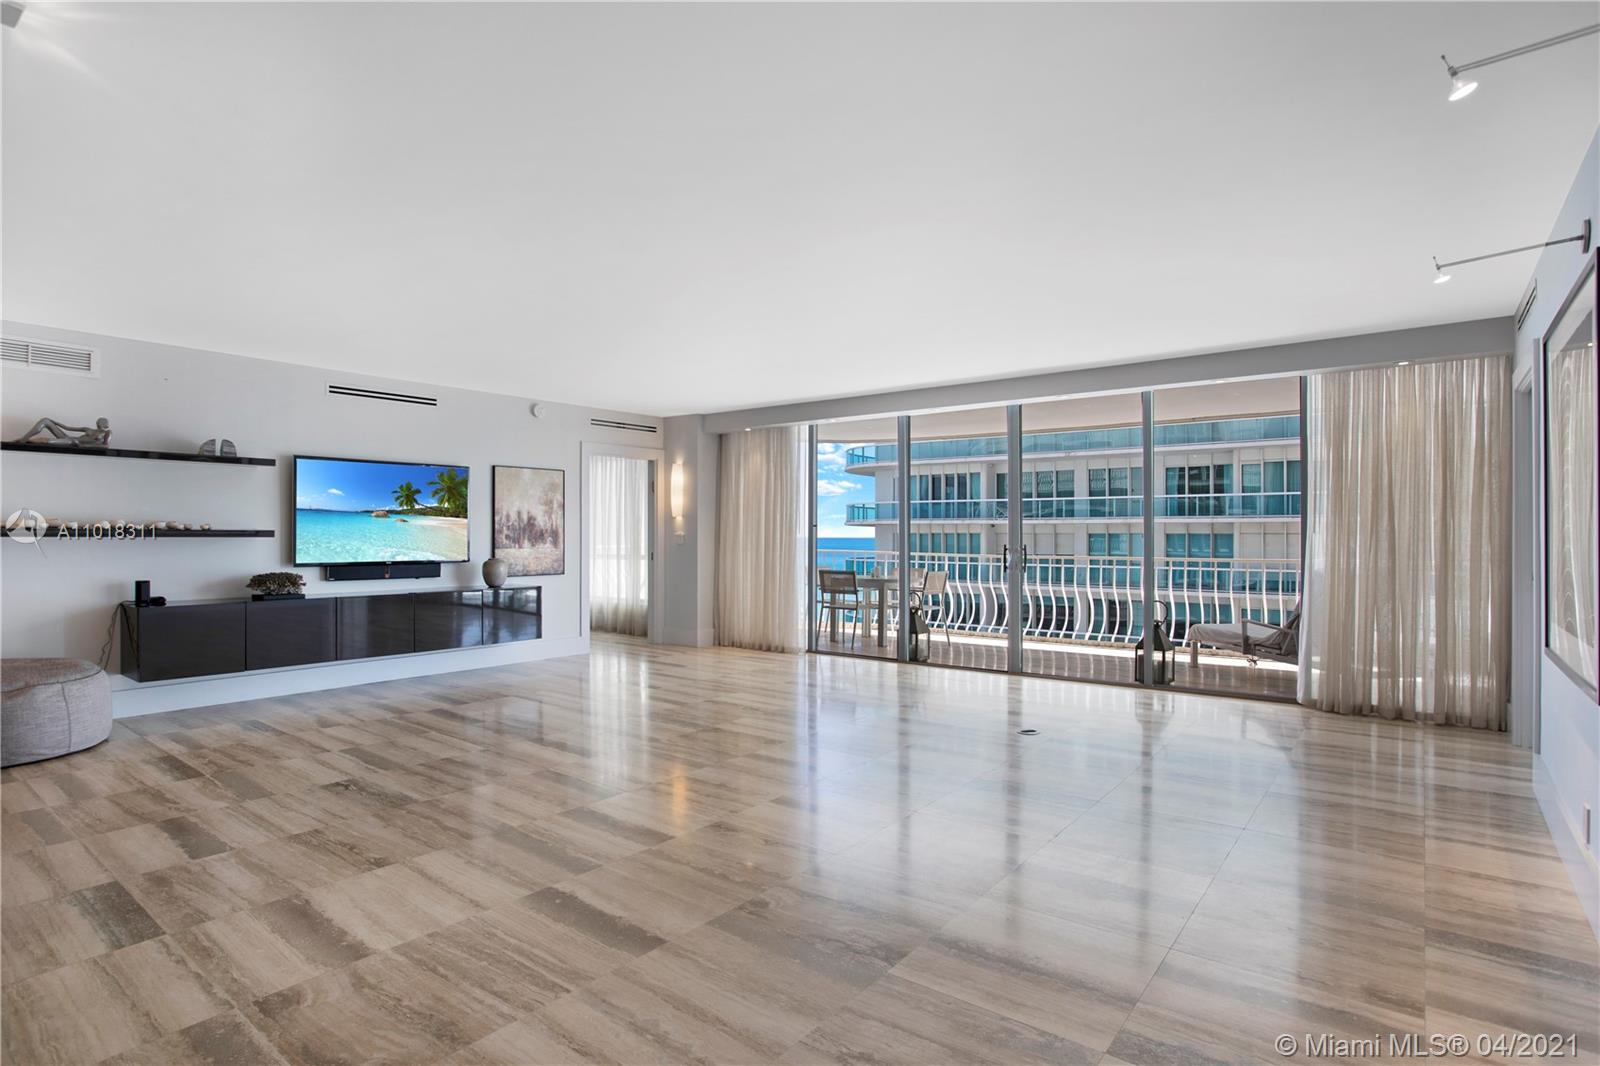 This stunning 2,525 sq ft apartment is located on the 10th floor of the beautifully renovated Bal Harbour 101 building. Open floorplan perfect for families and entertaining! Dramatic foyer and gorgeous ocean views. Spectacular eat-in kitchen with Sub-Zero, Wolf and Miele appliances. Split-plan features 2 bedrooms + den/3rd bedroom with 3 en-suite baths including a Primary Suite with 2 walk-in closets. 24-hour valet, tennis courts, basketball, pool, state of the art fitness center, on-site restaurant, social room and beach service. Steps from the beach, this unit is located in the heart of Bal Harbour walking distance to Bal Harbour Shops with the best shopping and outdoor dining options.